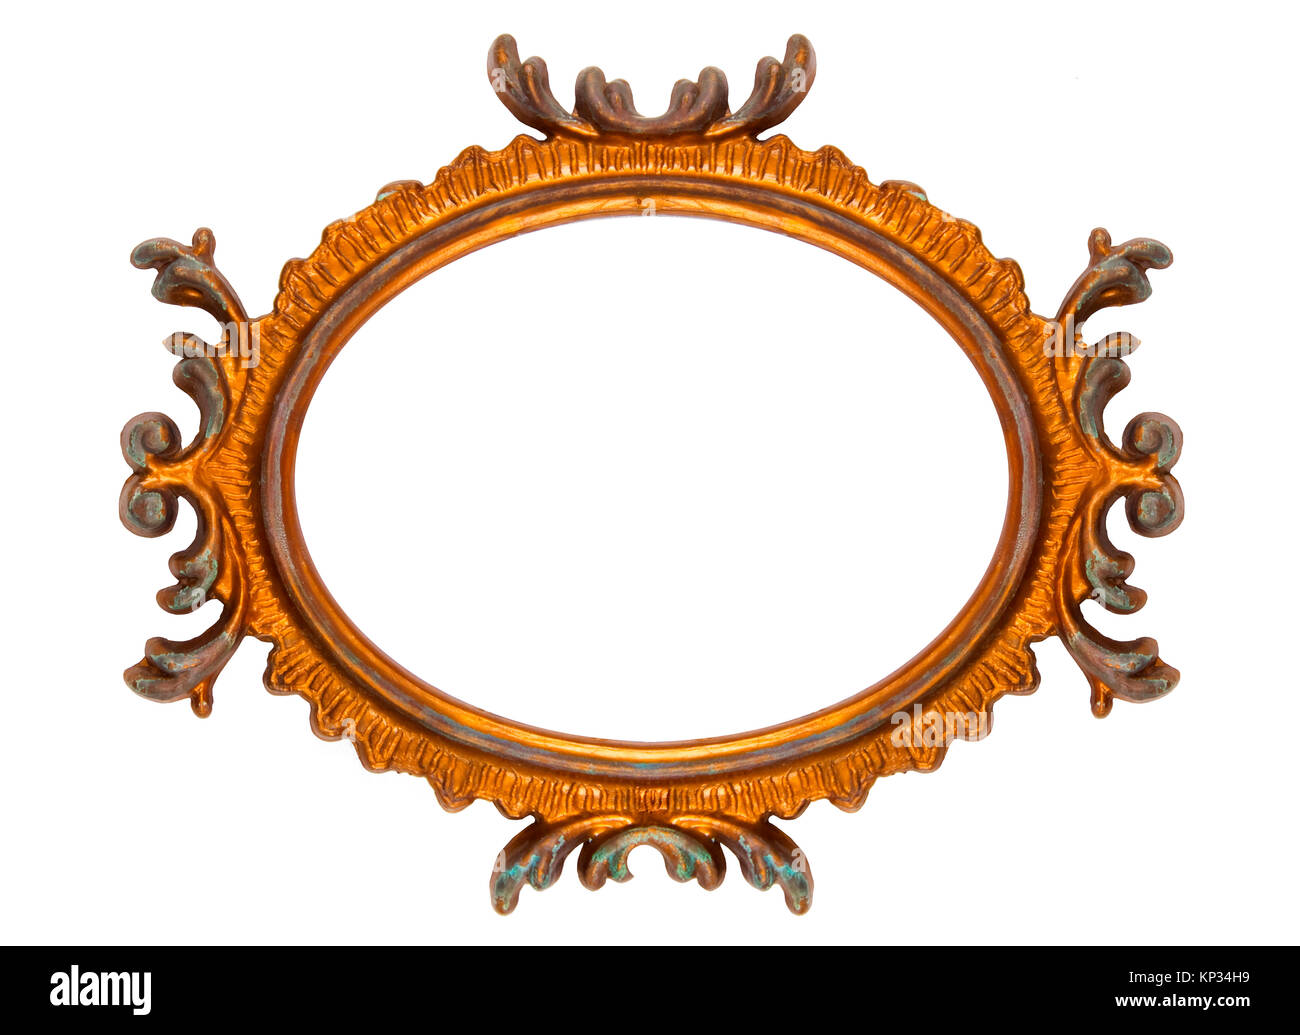 Old Ovall Picture Frame on white background - Stock Image